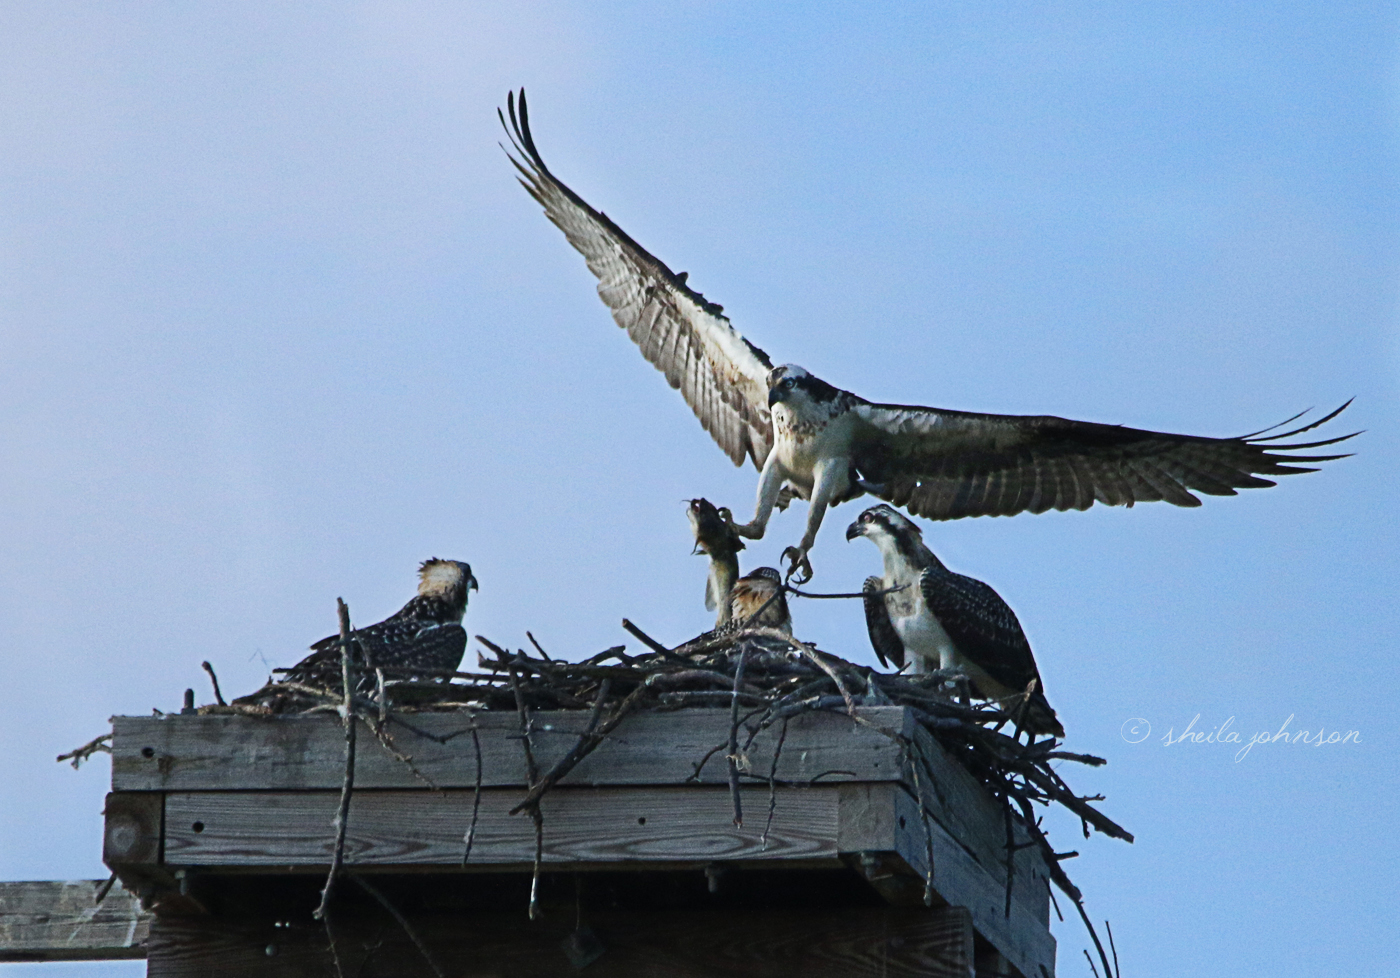 Day In And Day Out, Mama Osprey Protects Her Nest, And She Brings Home The Bacon, Too. Catfish Is The New Bacon, Don't Ya Know?